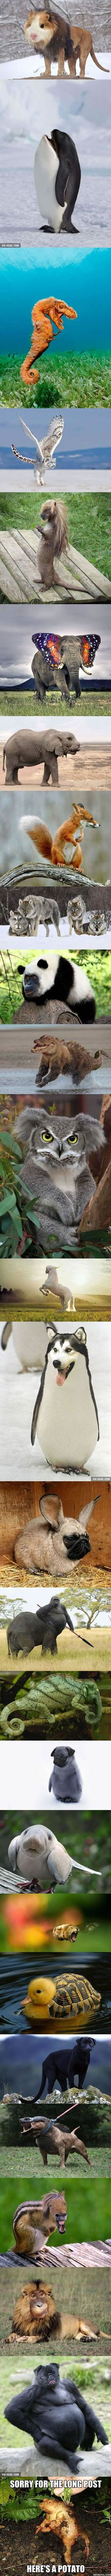 New Memes Hilarious Scary 61 Ideas Cute Funny Animals, Funny Animal Pictures, Funny Cute, Funny Photos, The Funny, Hilarious, Animals And Pets, Baby Animals, Tierischer Humor